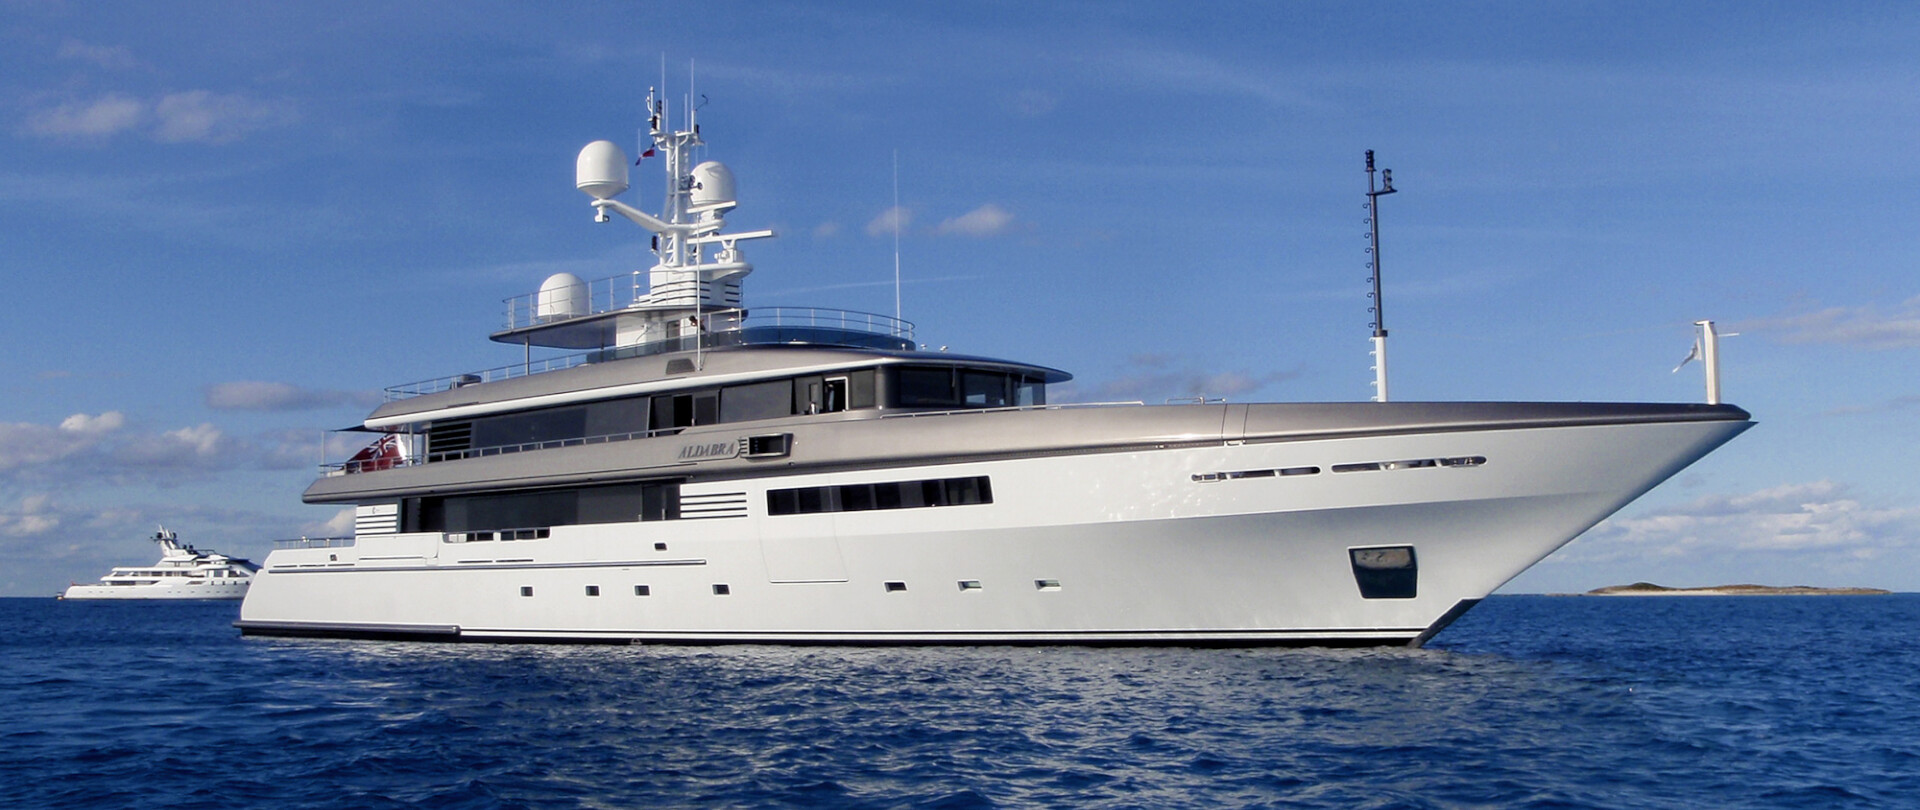 Superyachts ANASTASIA and ALDABRA to Attend Singapore Yacht Show 2015 photo 2